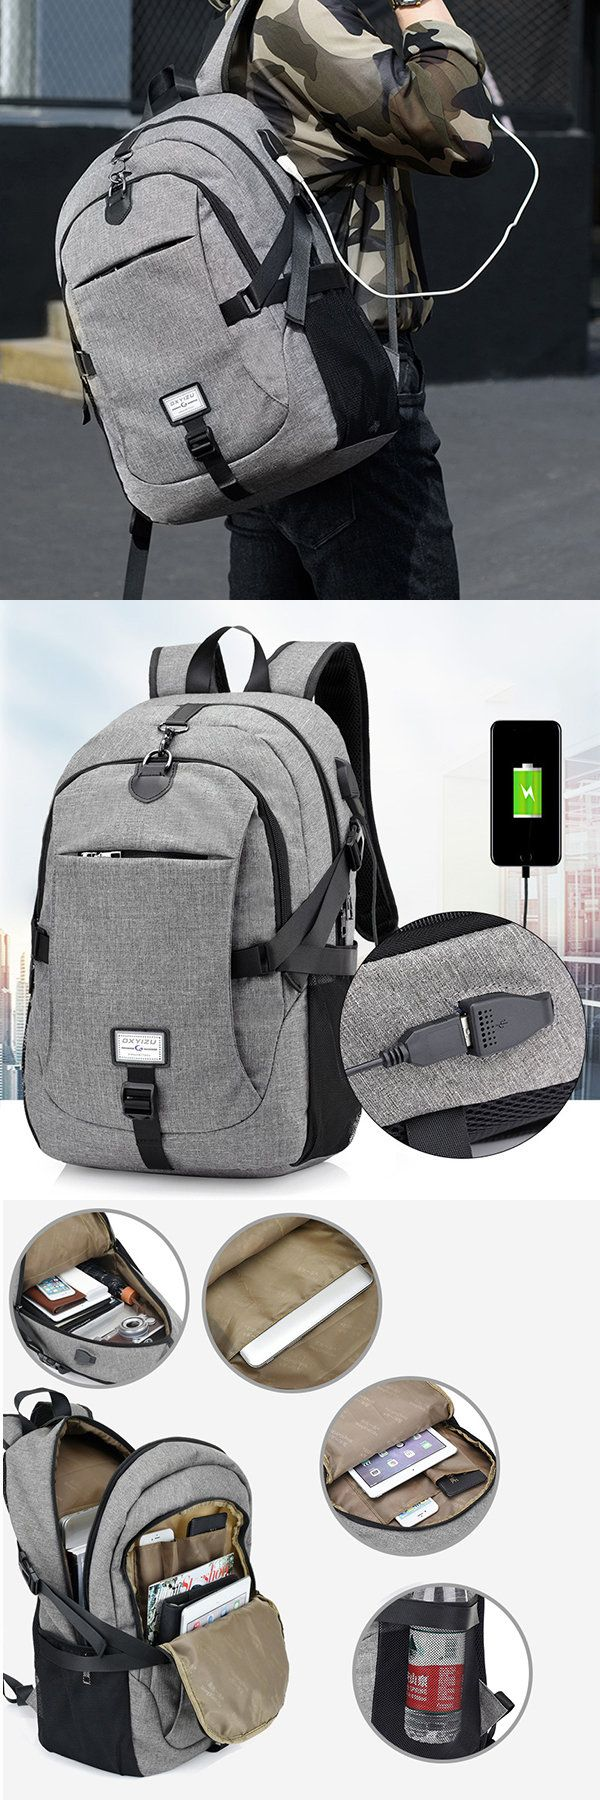 Casual Business Outfit:  Anti-theft Laptop Bag With USB Charger  Backpack For Men & Women